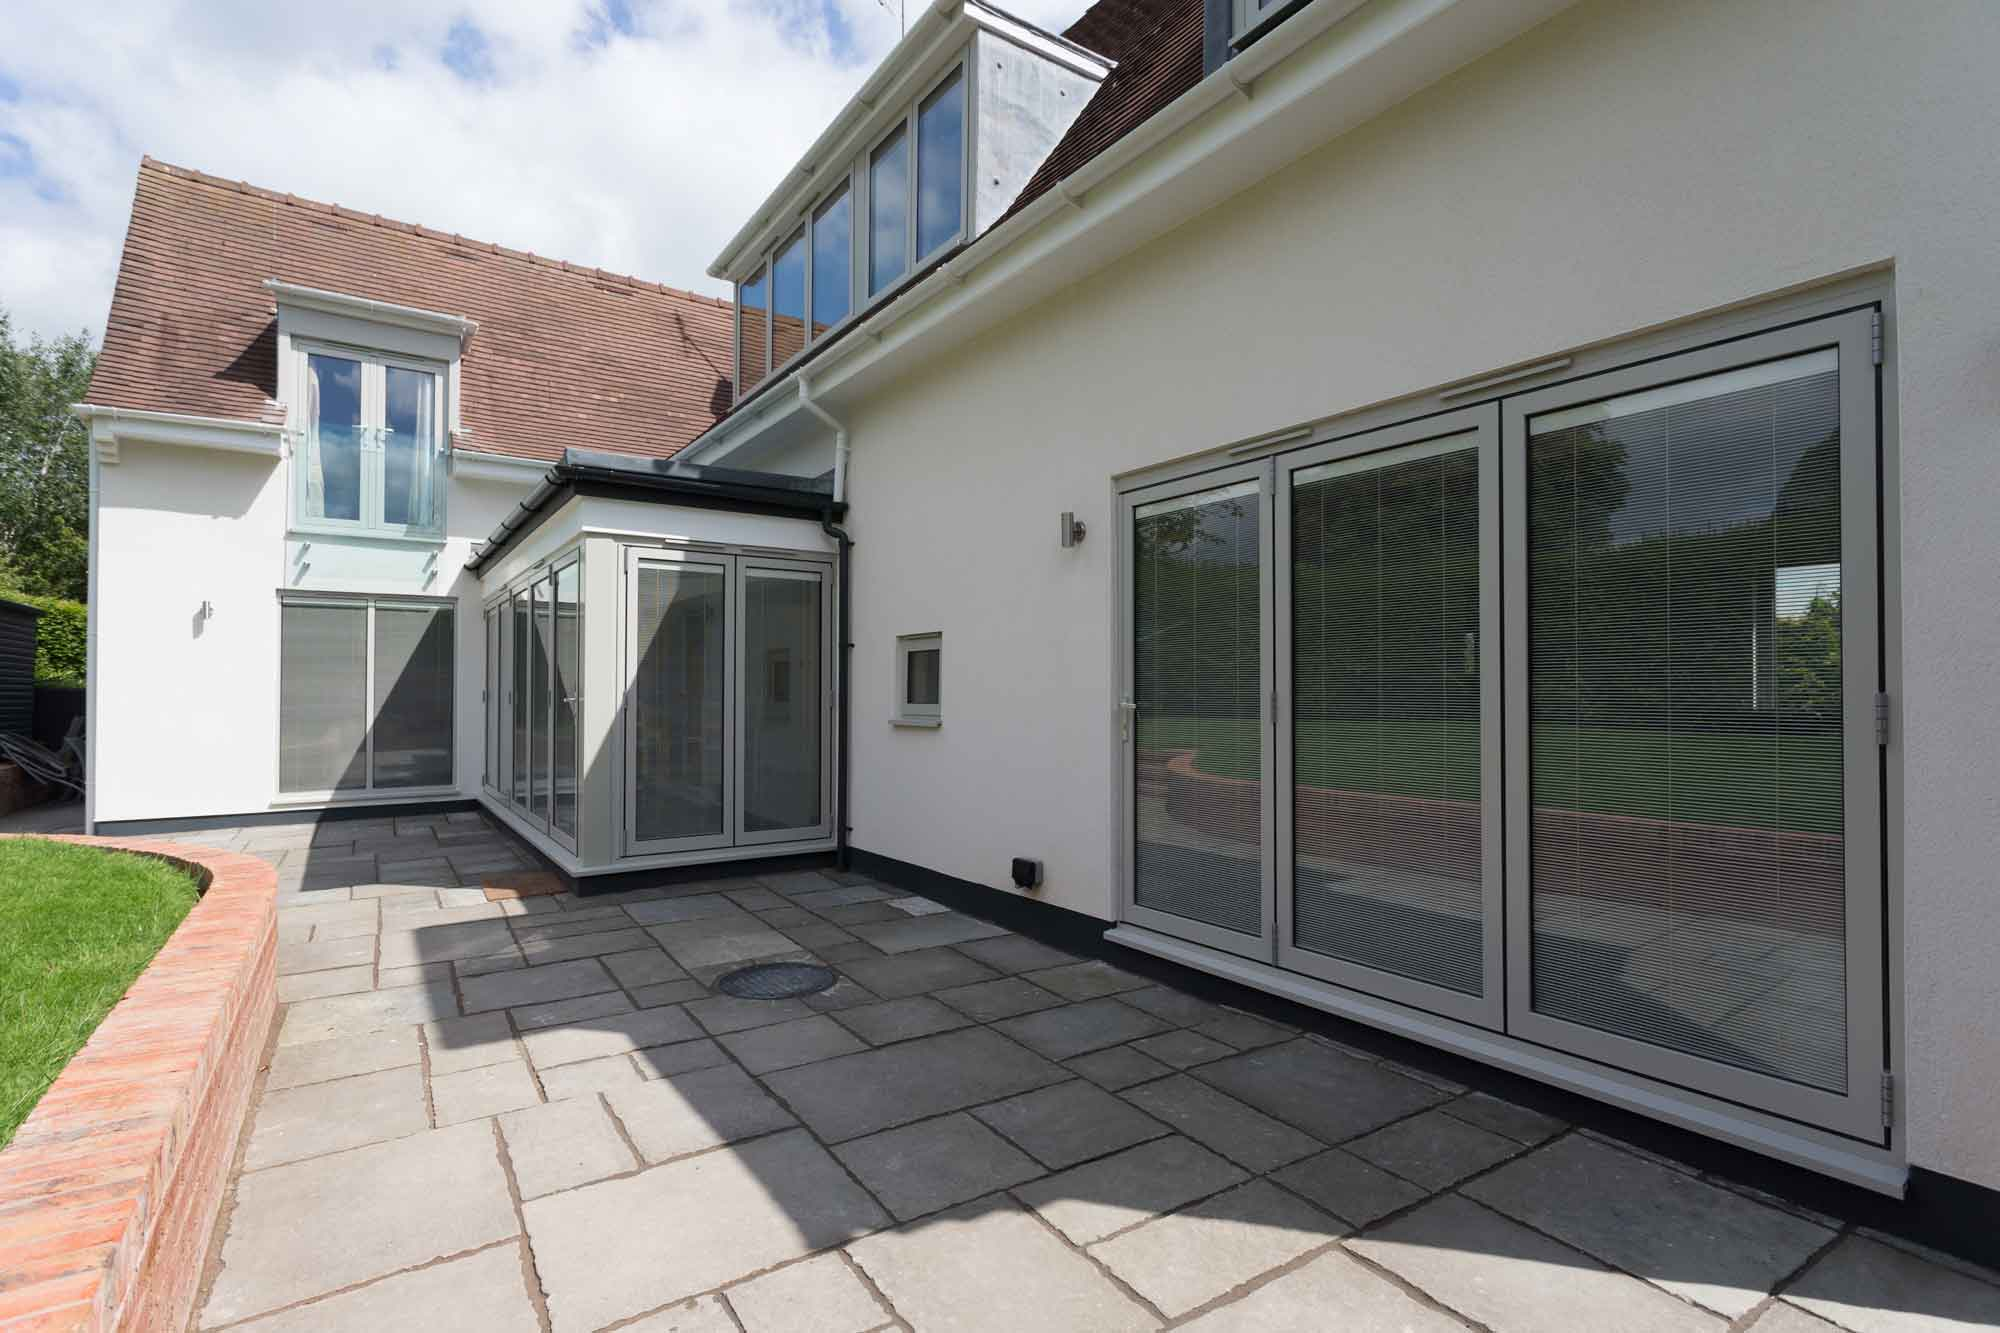 bi-fold doors grey Indian stone paving